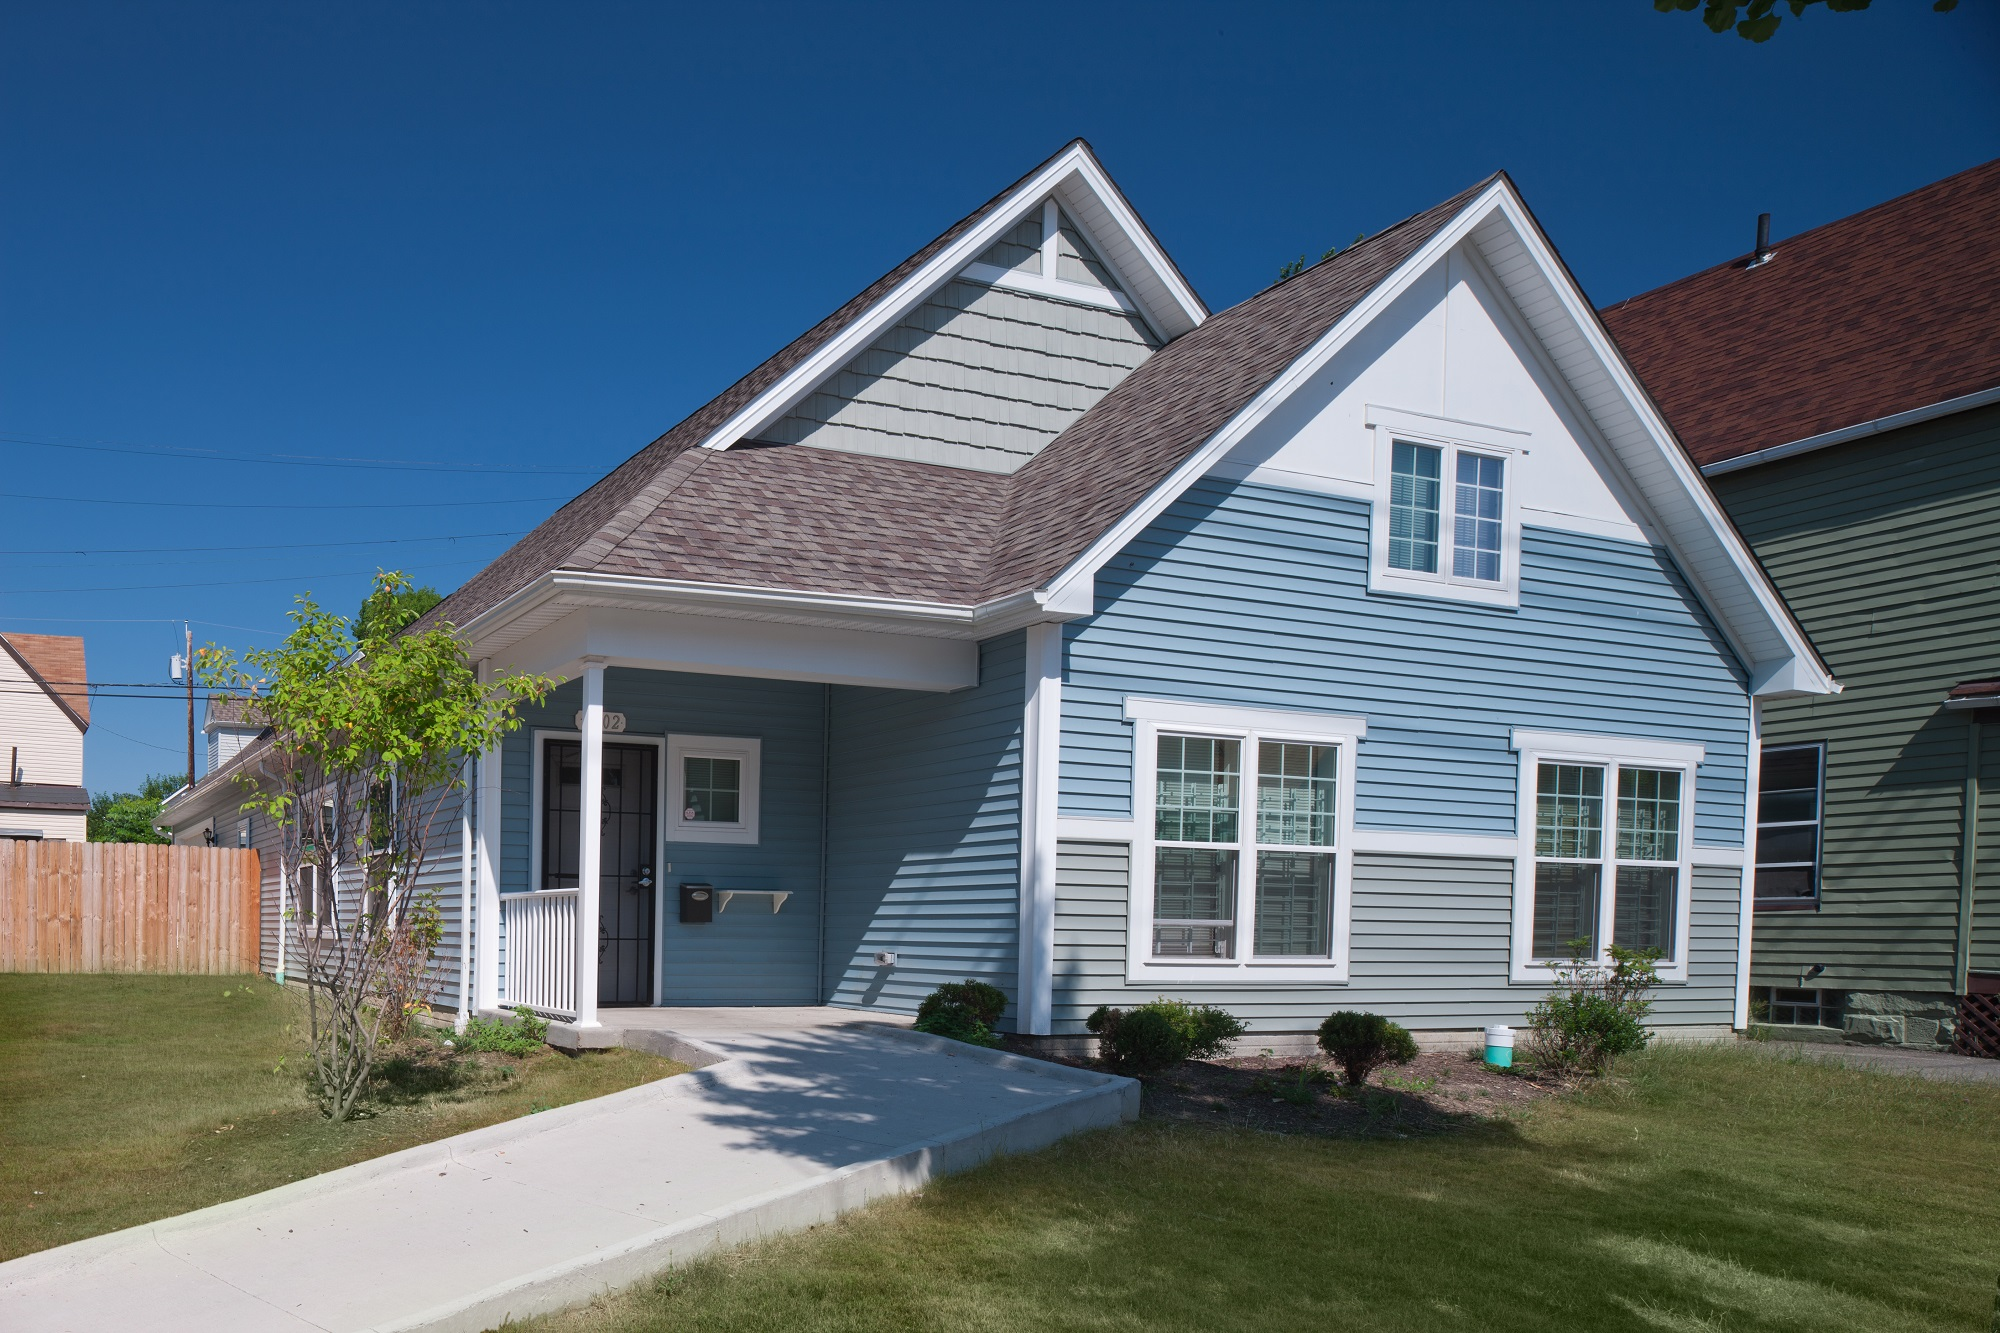 Lease to Own Provides Strategy for Homeownership